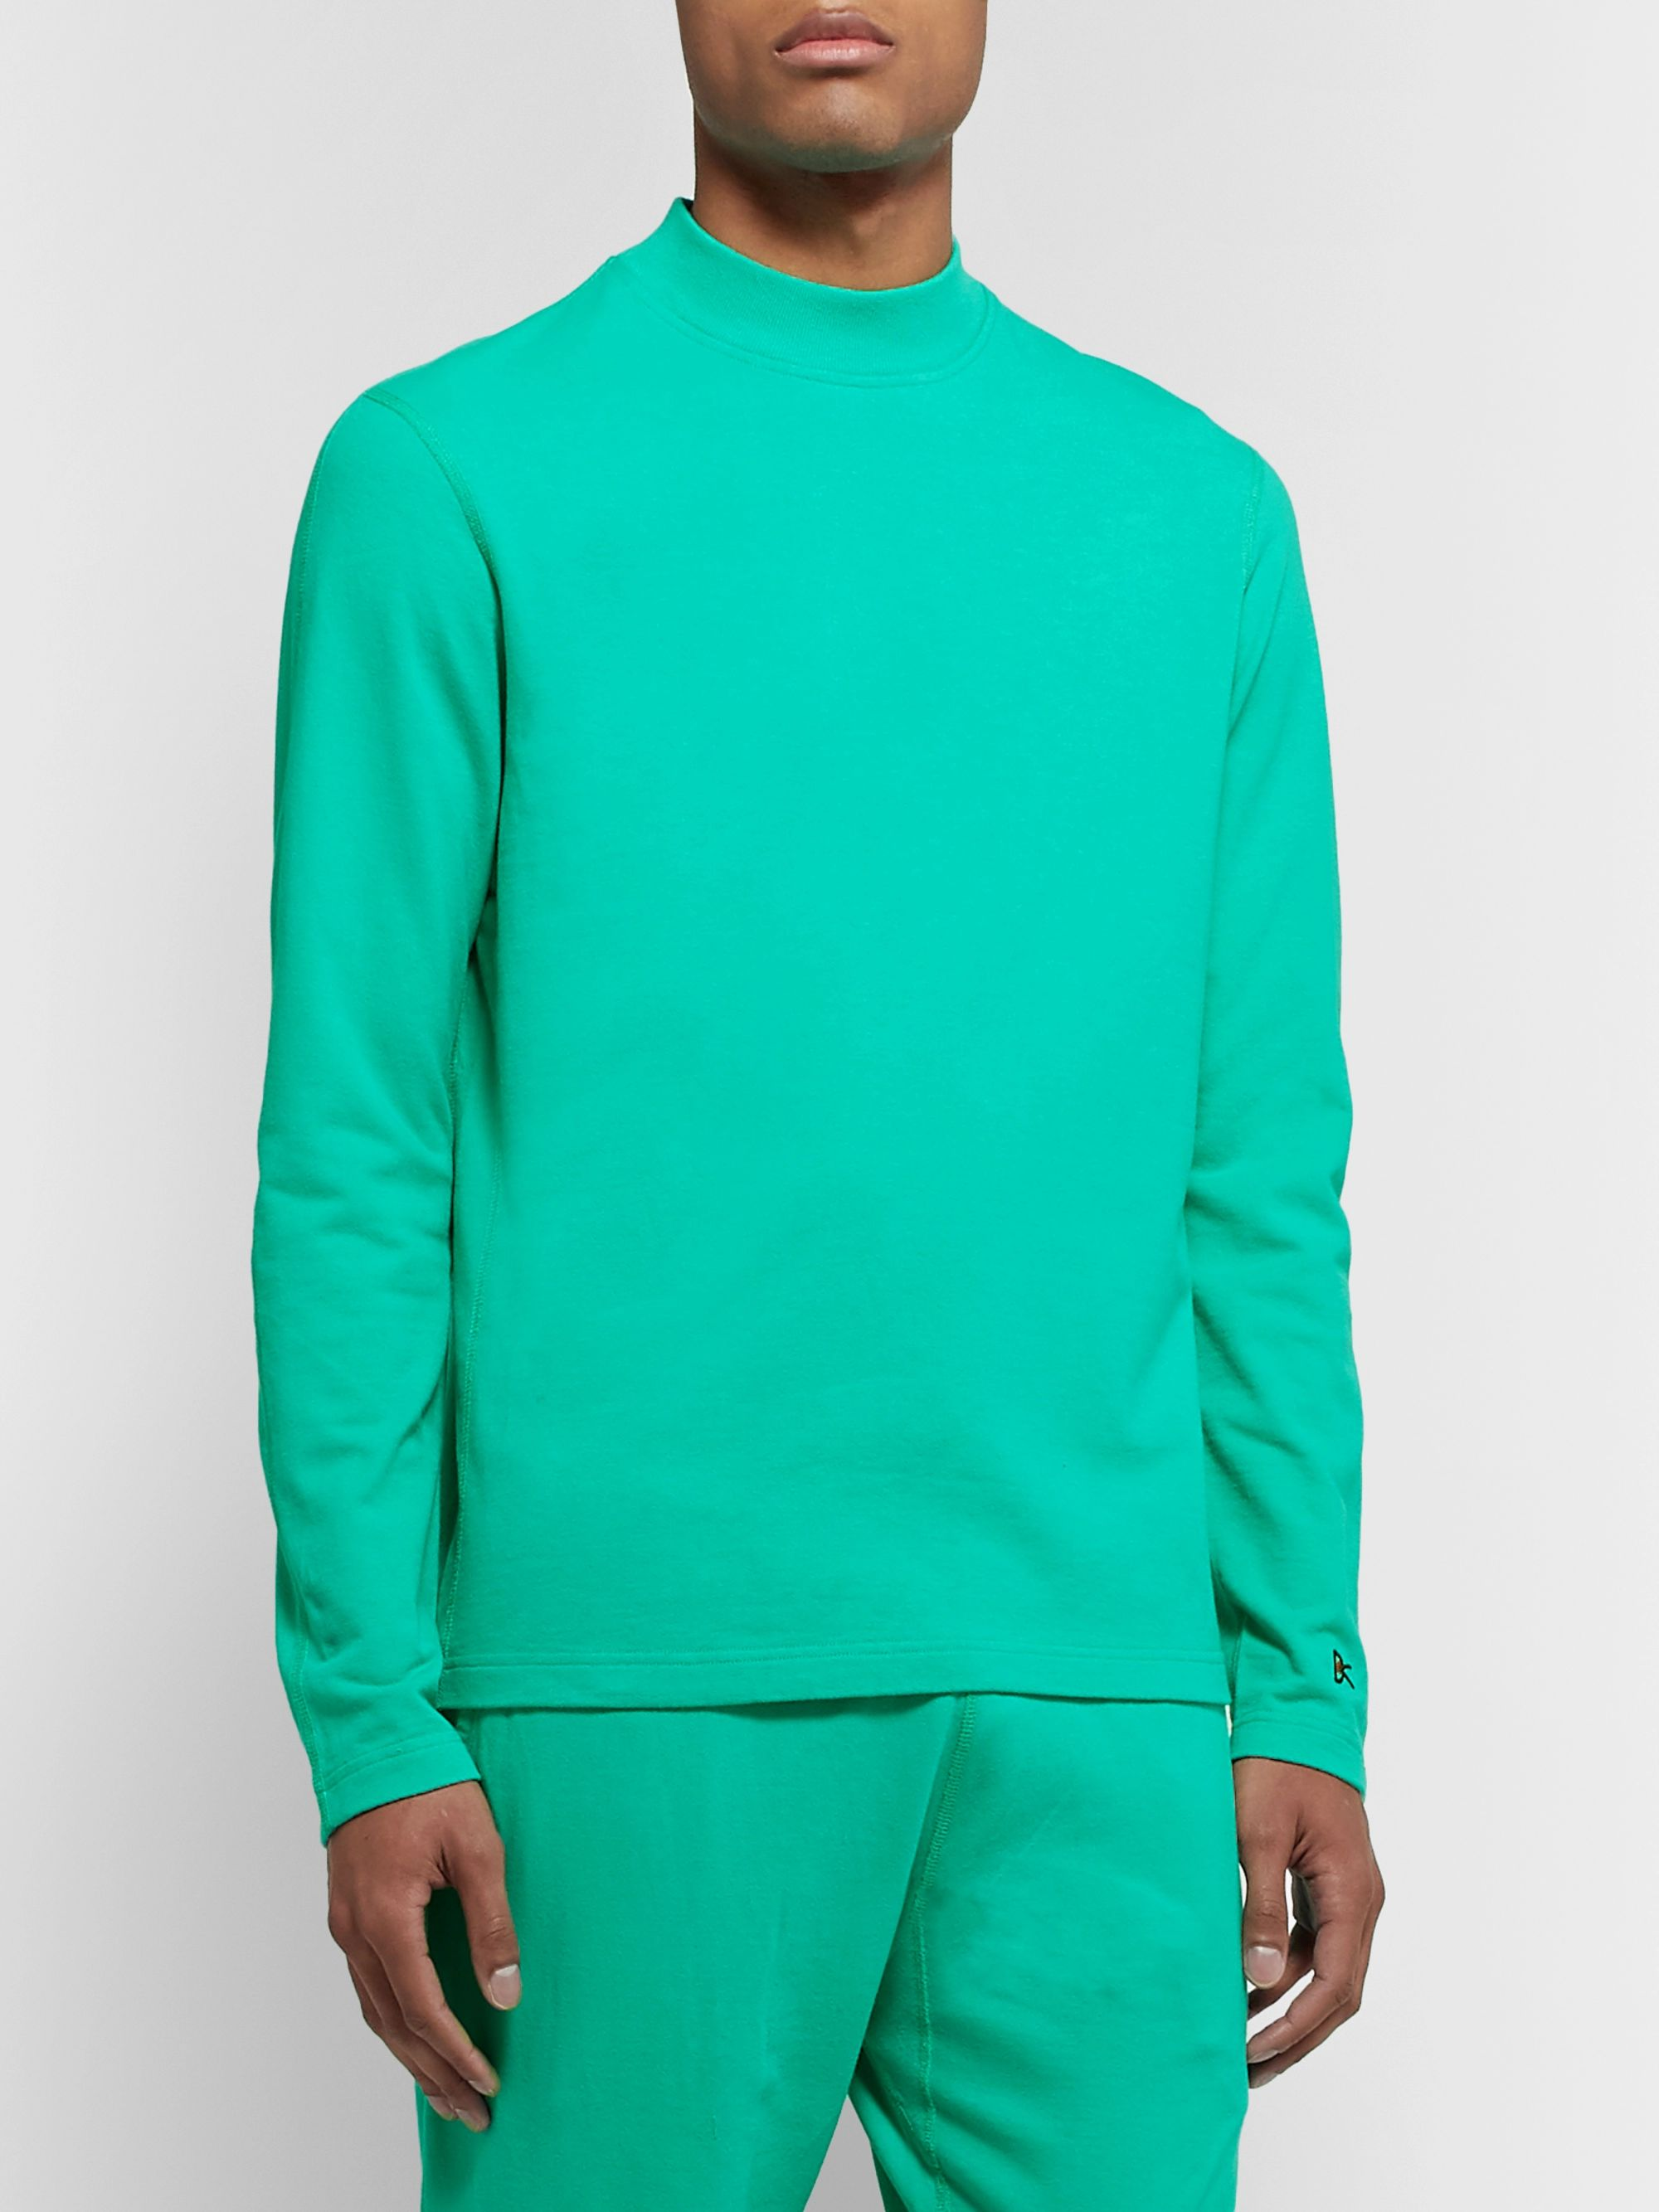 DISTRICT VISION + Reigning Champ Radical Retreat Loopback Cotton-Jersey Sweatshirt